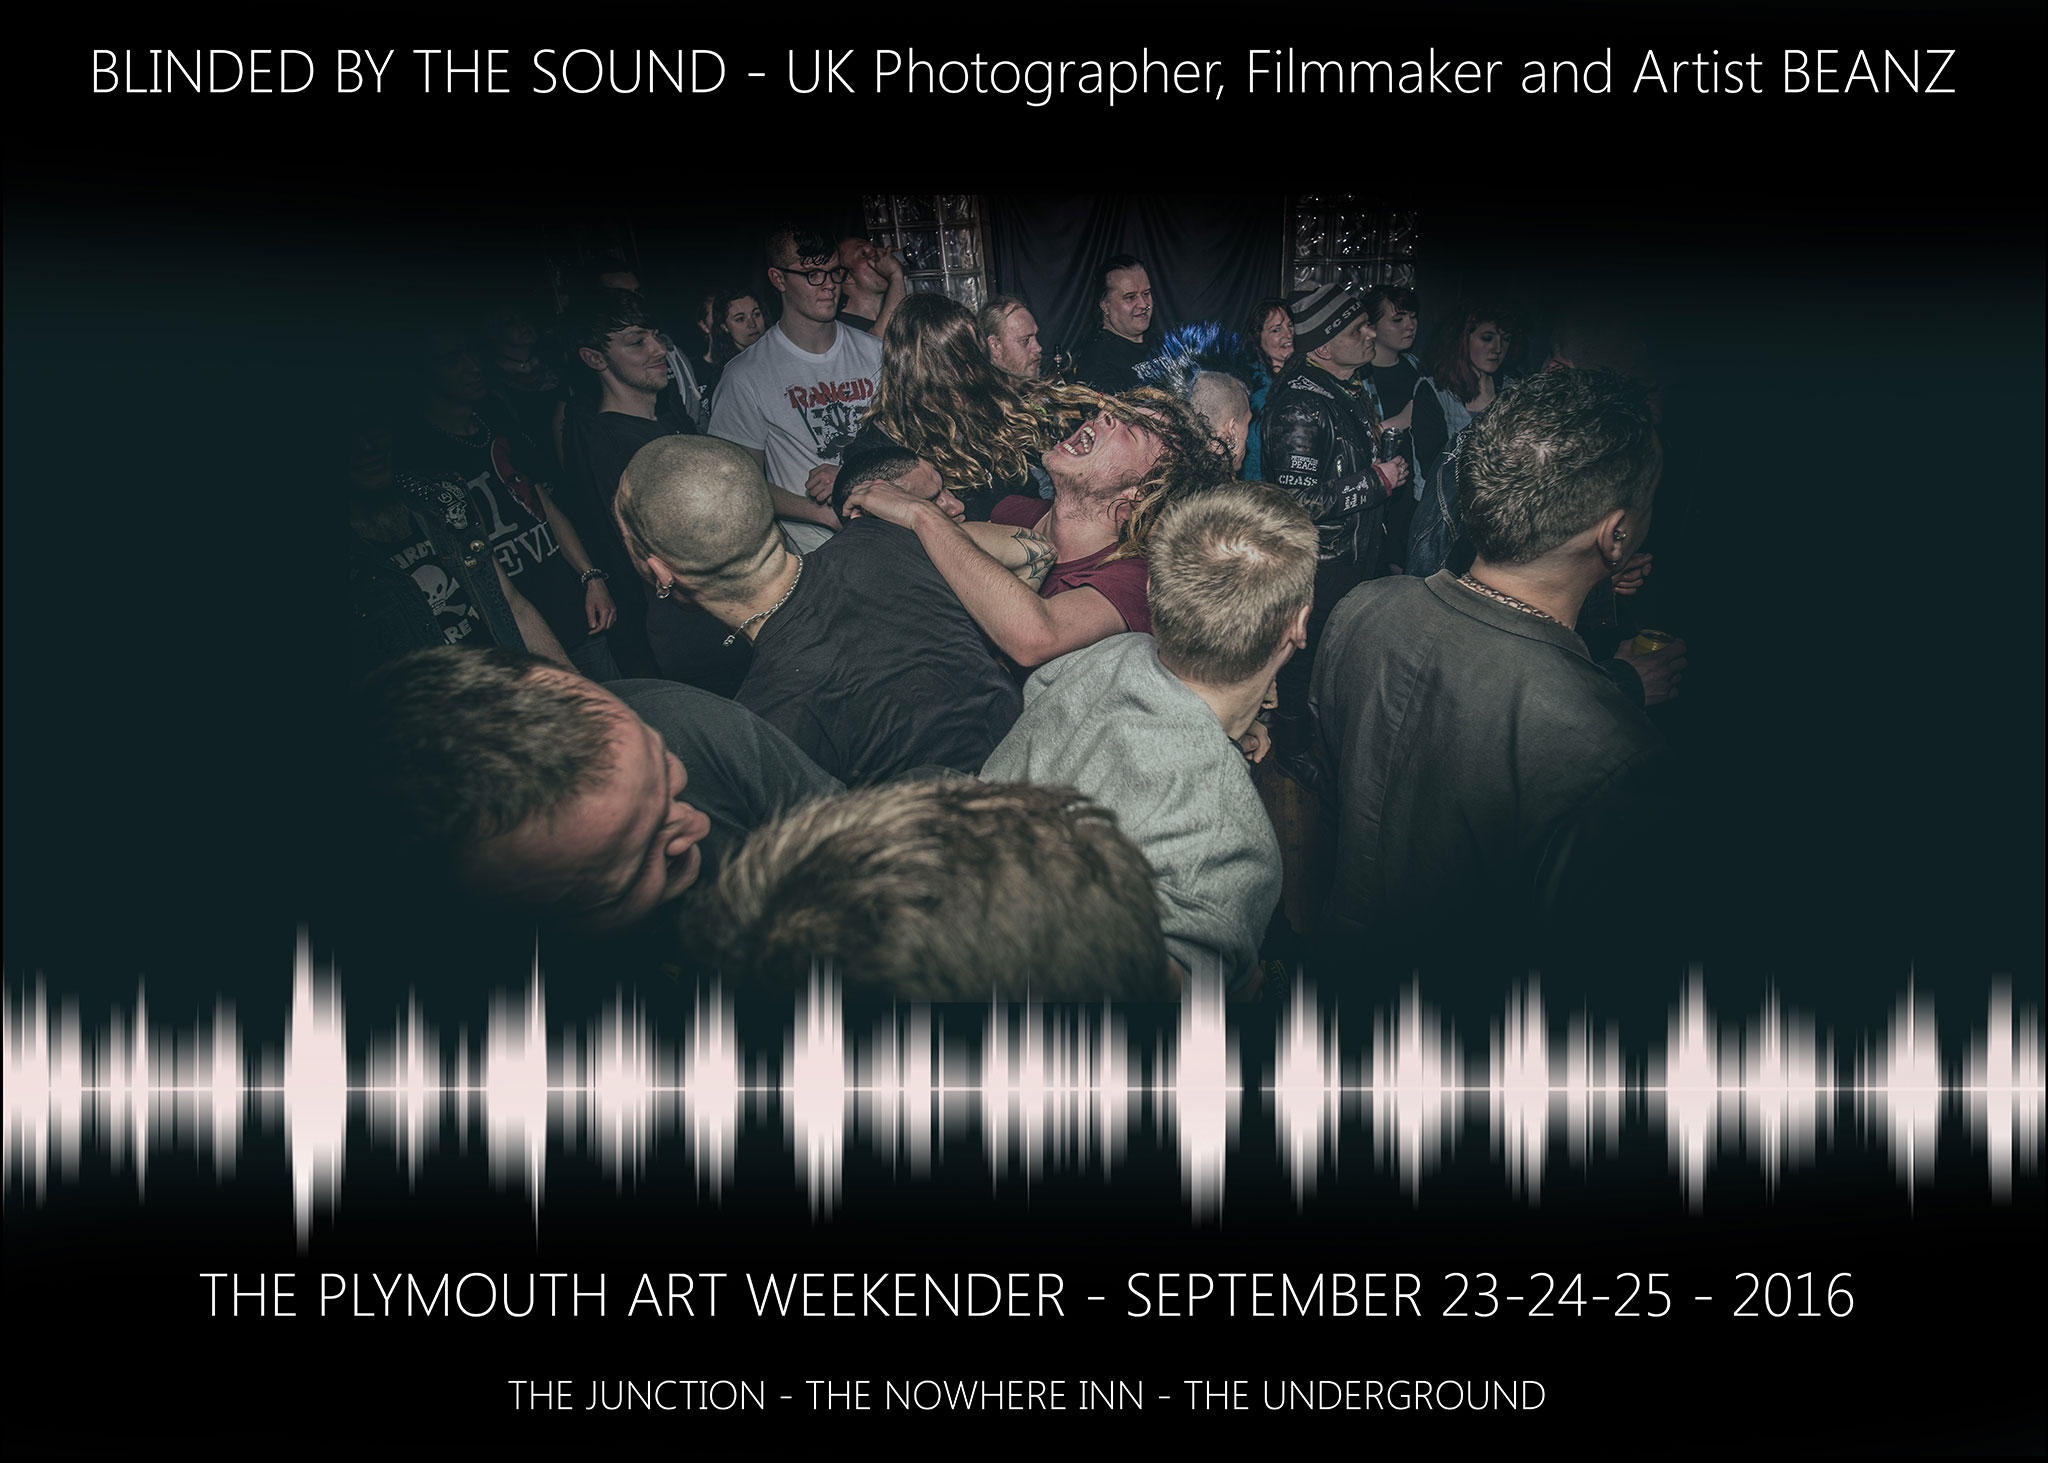 Action Photograph of Passionate Music fans in Plymouth at Underground Venue during a gig